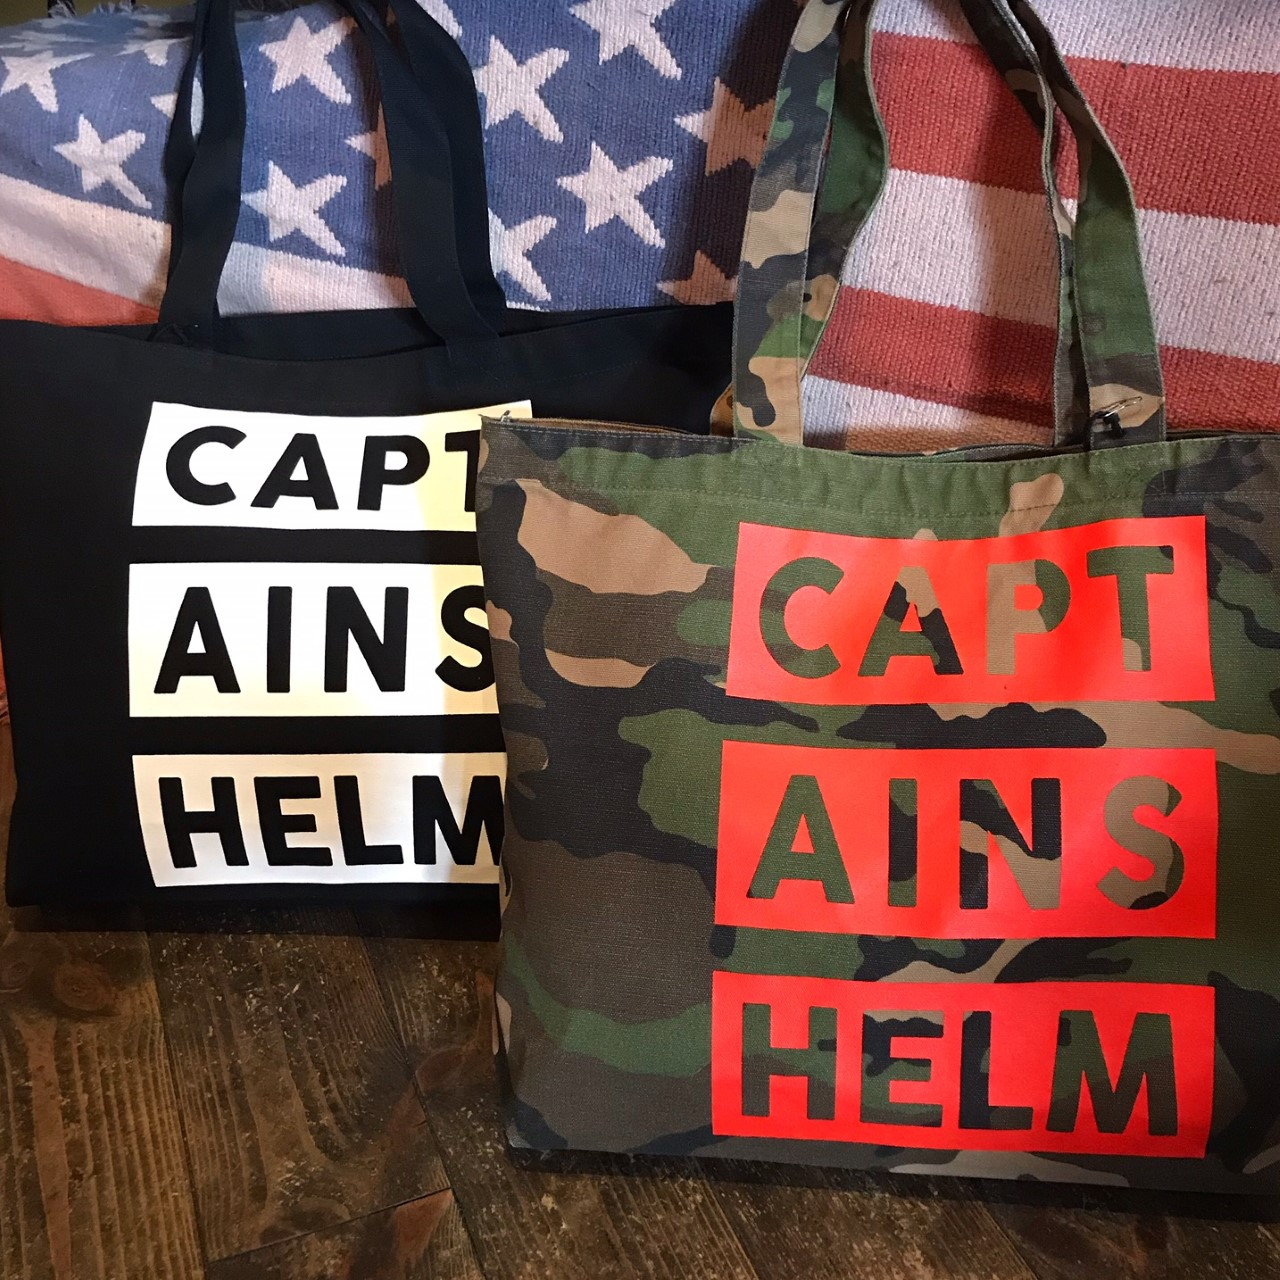 CAPTAINS HELM  #3BAR LOGO TOTE BAG 〜STEADY AND SHAFT LIMITED〜